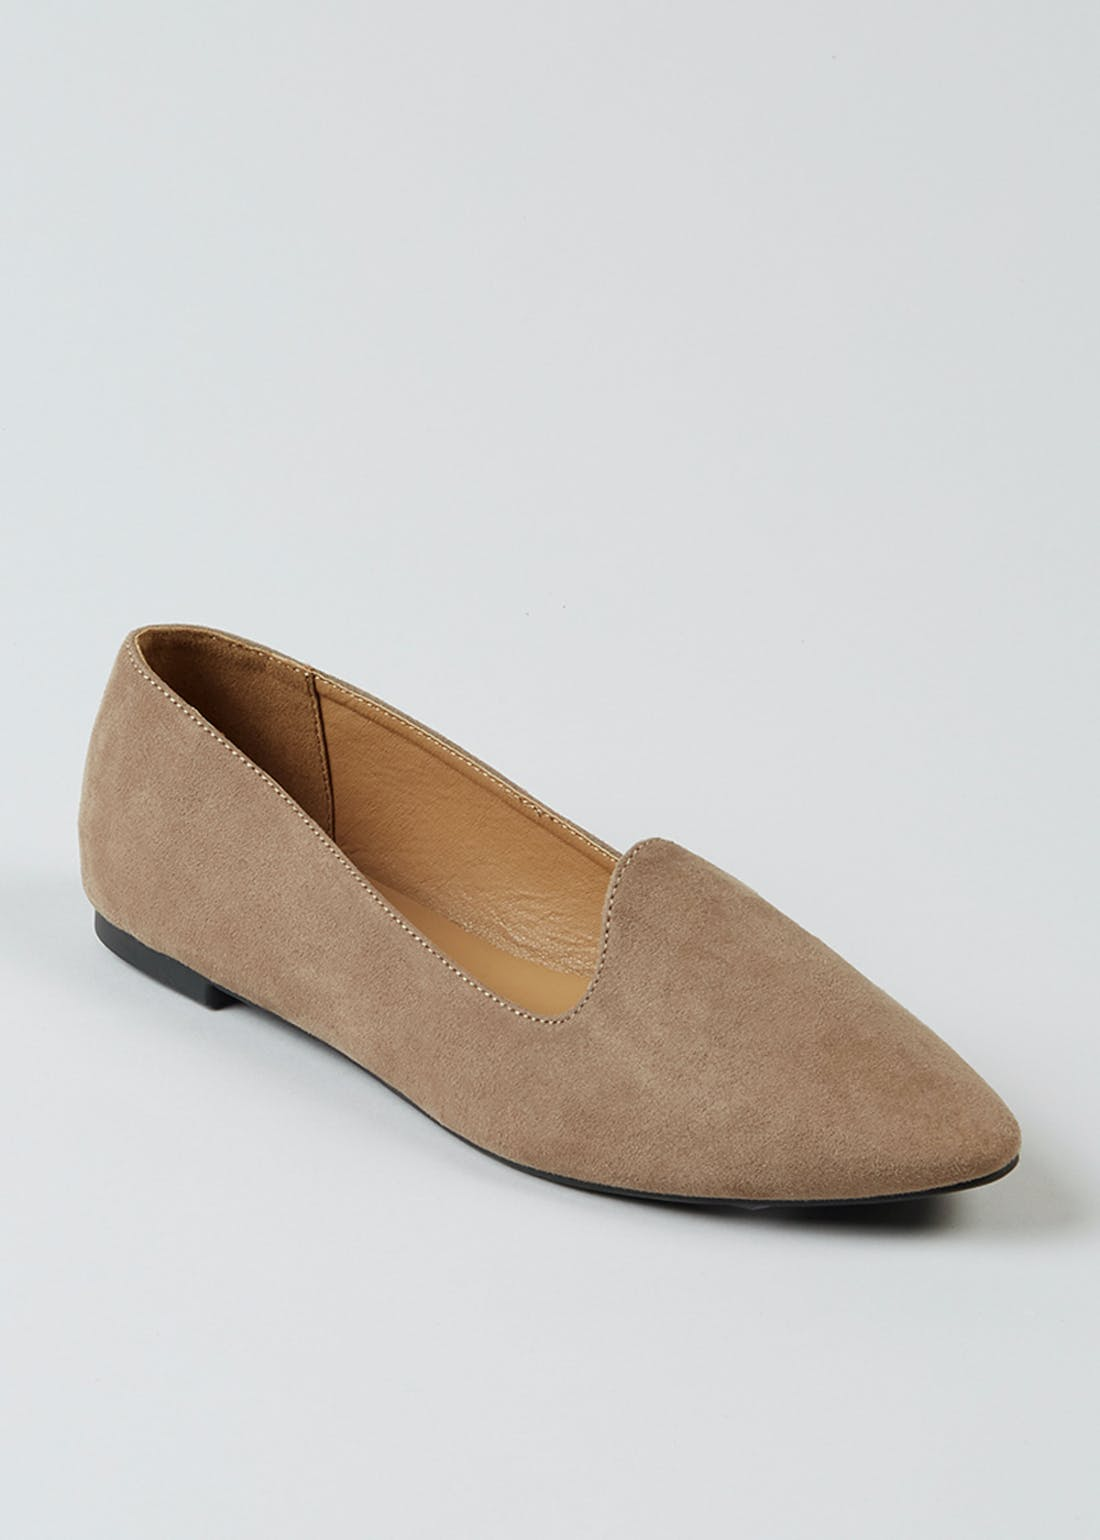 Taupe Suedette Ballet Slipper Shoes